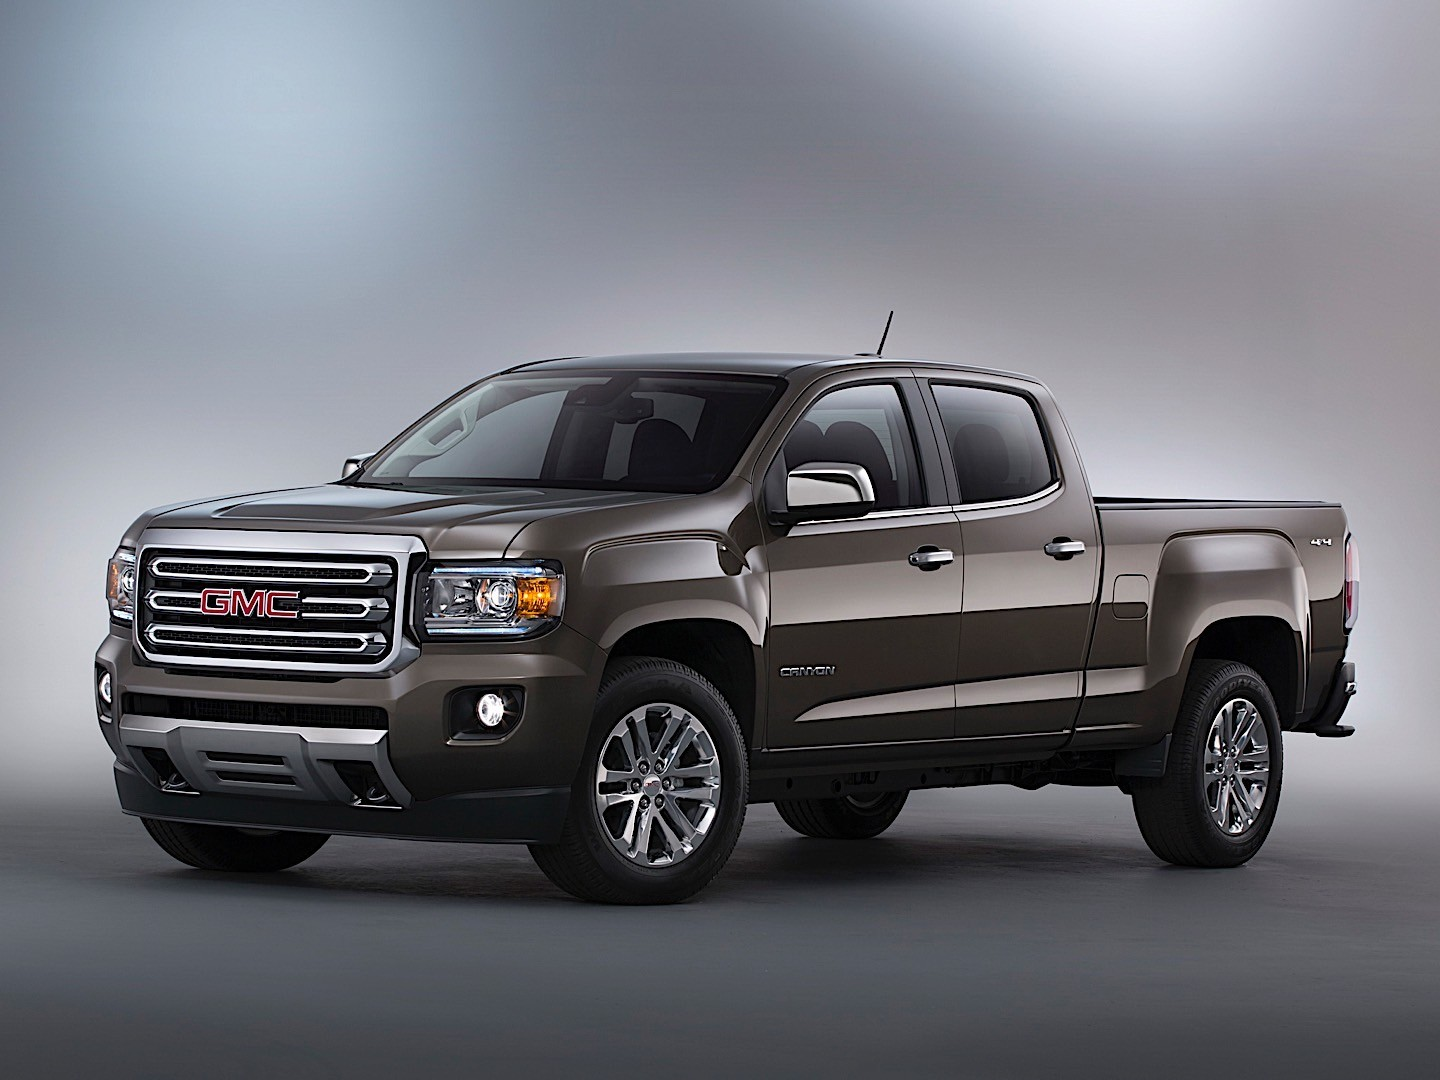 gmc canyon crew cab specs 2014 2015 2016 2017 2018. Black Bedroom Furniture Sets. Home Design Ideas